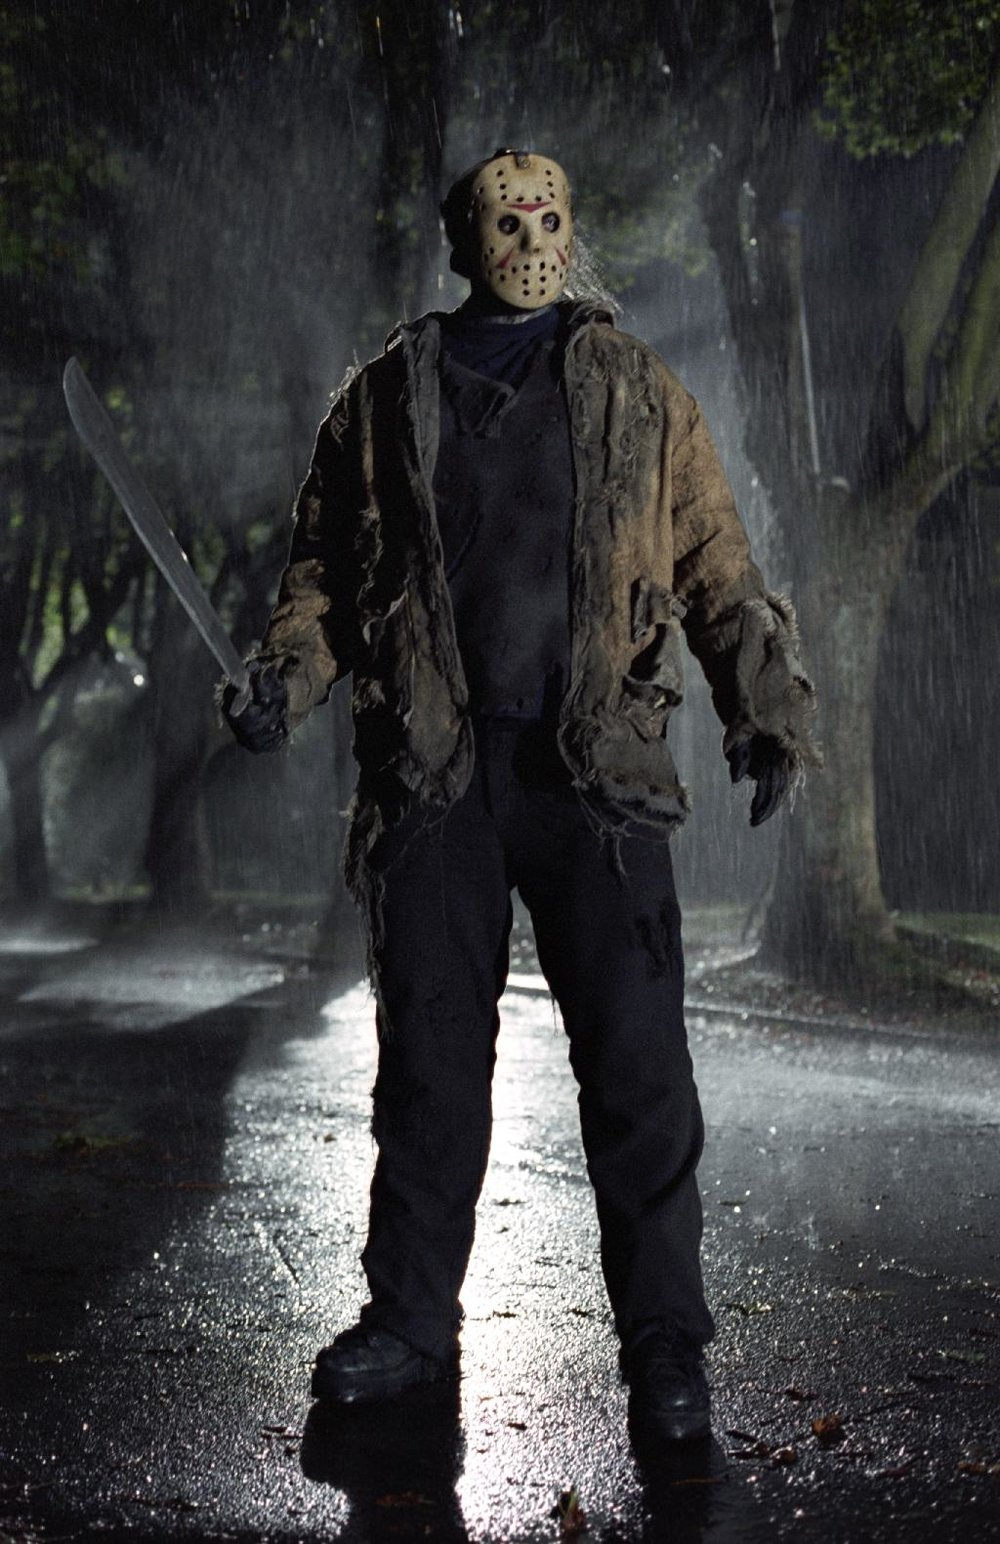 2003_freddie_vs_jason_002-ken-kirzainger-as-jason.jpg